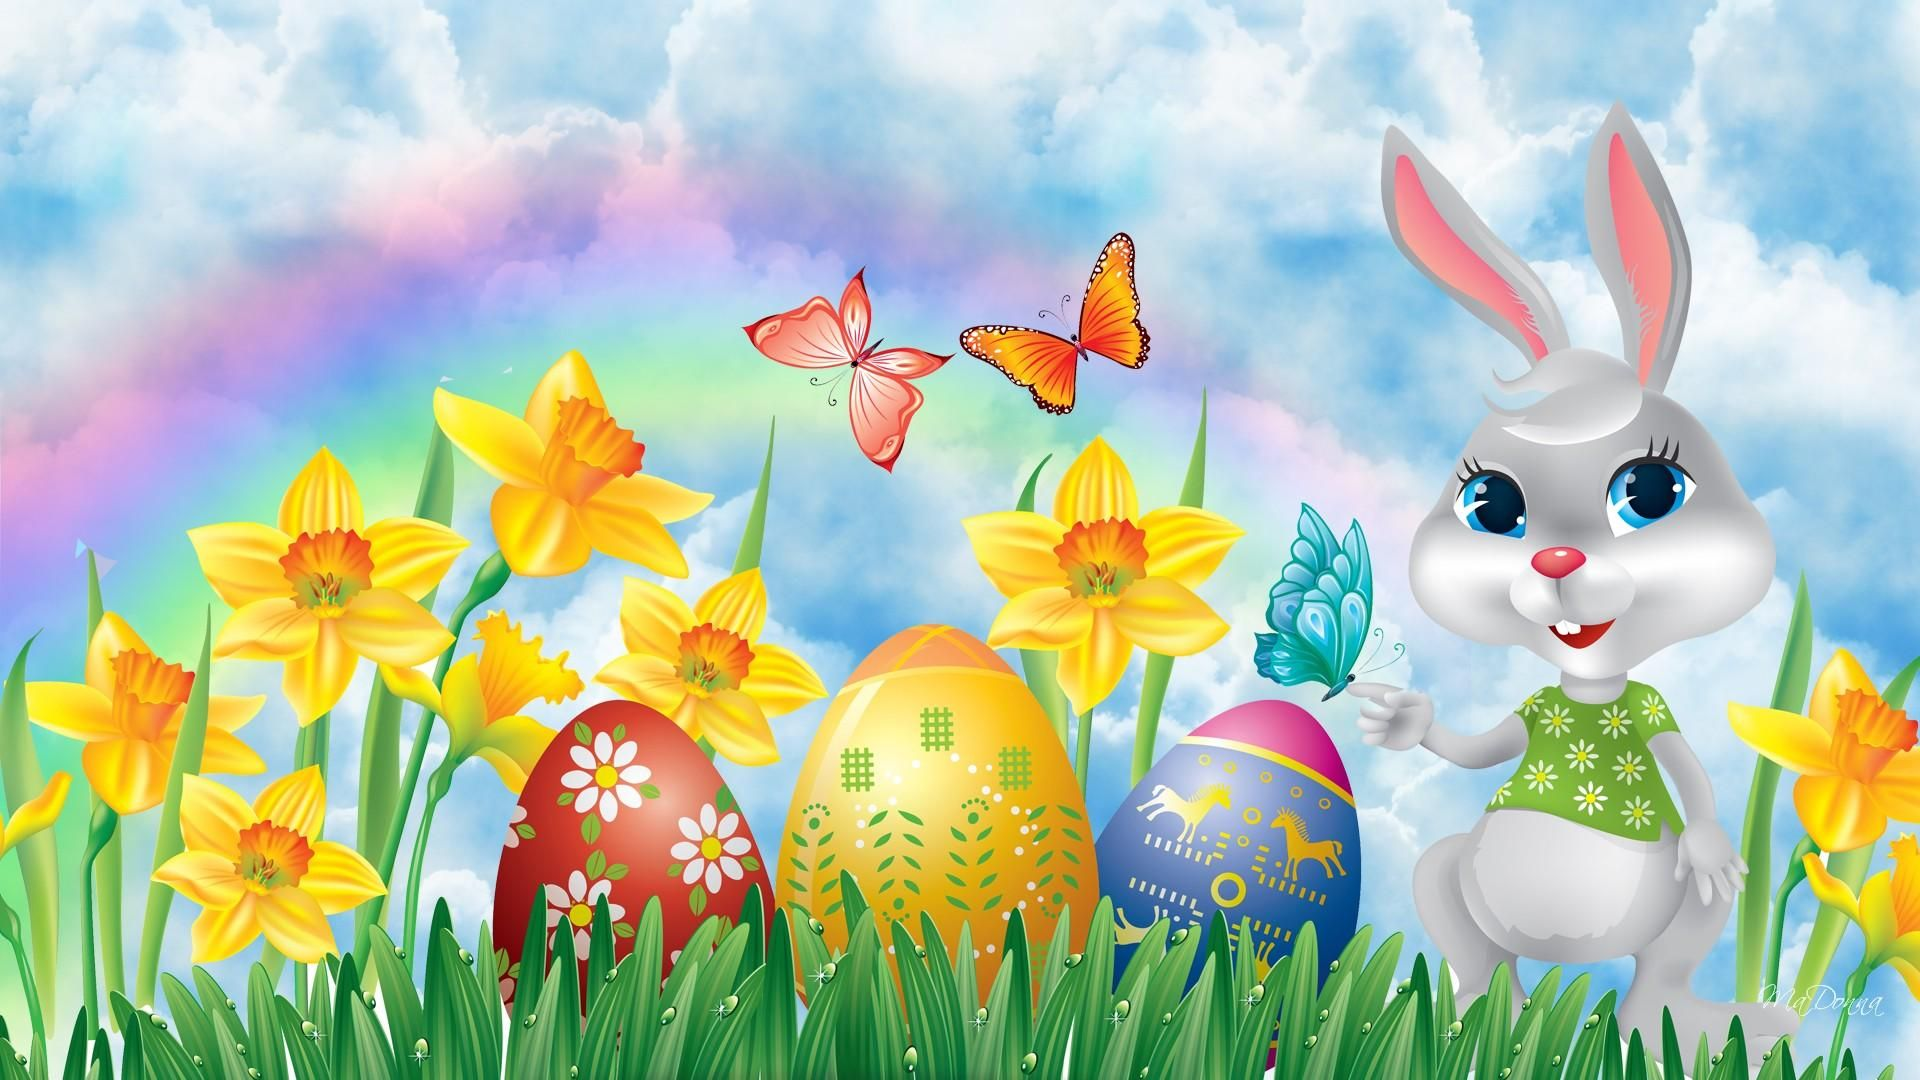 Easter Wallpapers For Desktop Happy Easter Hd Wallpaper High Definition Easter Wallpaper Happy Easter Pictures Happy Easter Wallpaper